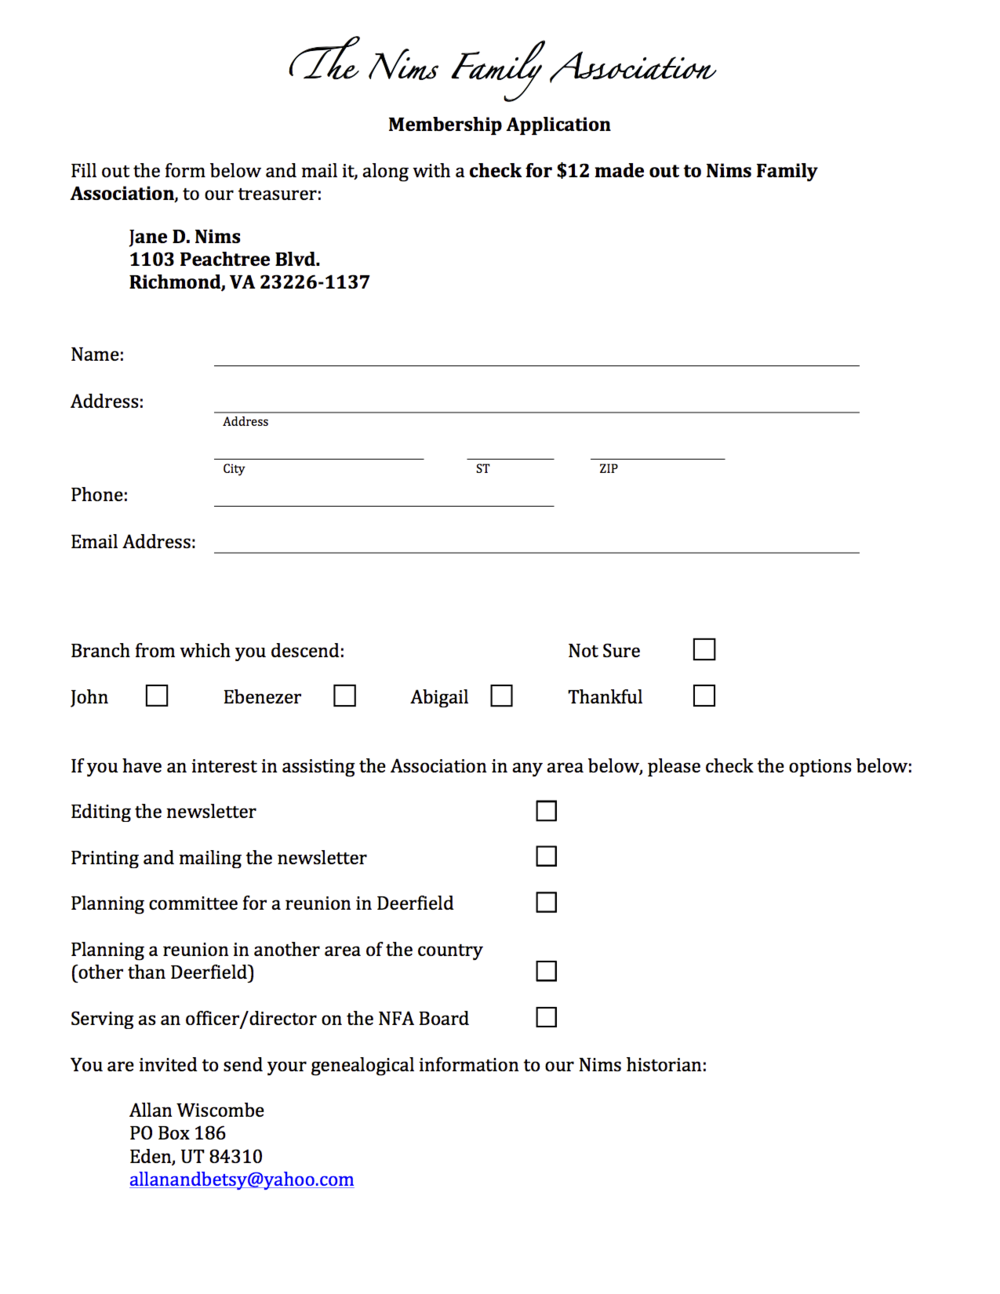 Click  here  to download a Nims Family Association membership application